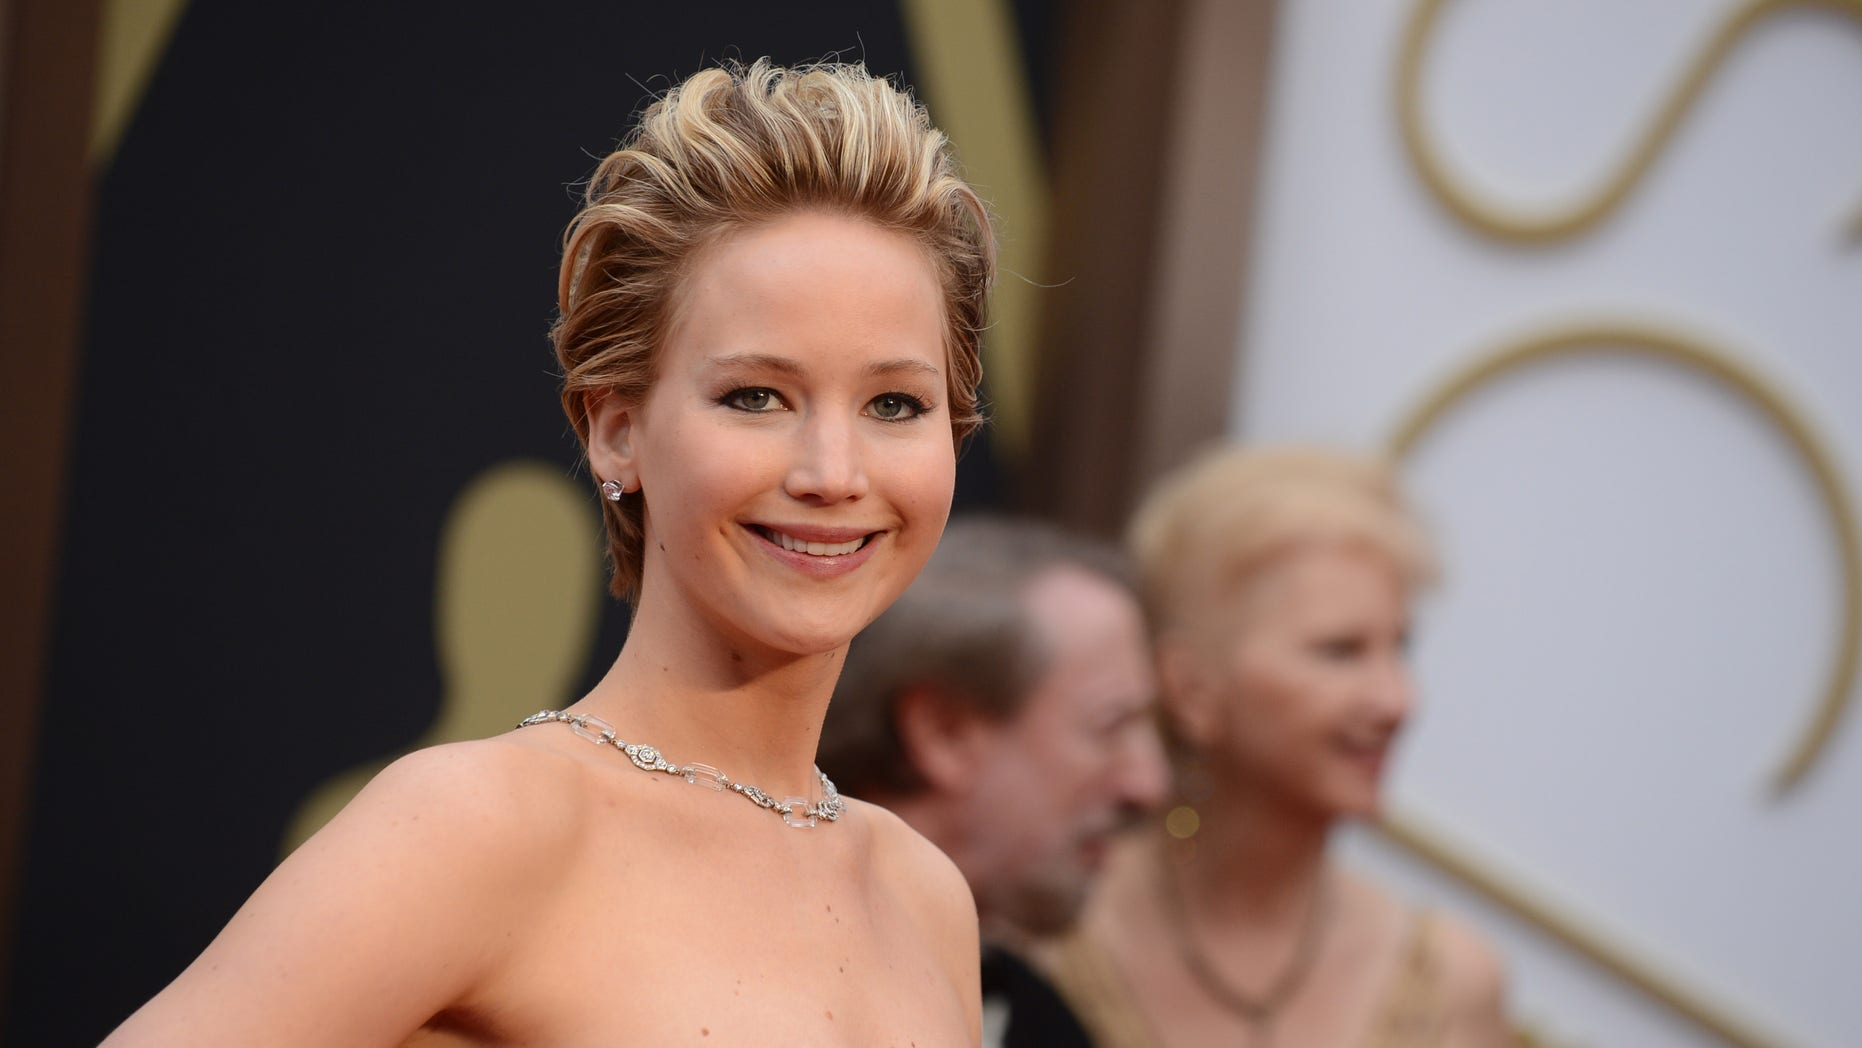 Jennifer Lawrence arrives at the Oscarsat the Dolby Theatre in Los Angeles, on March 2, 2014.